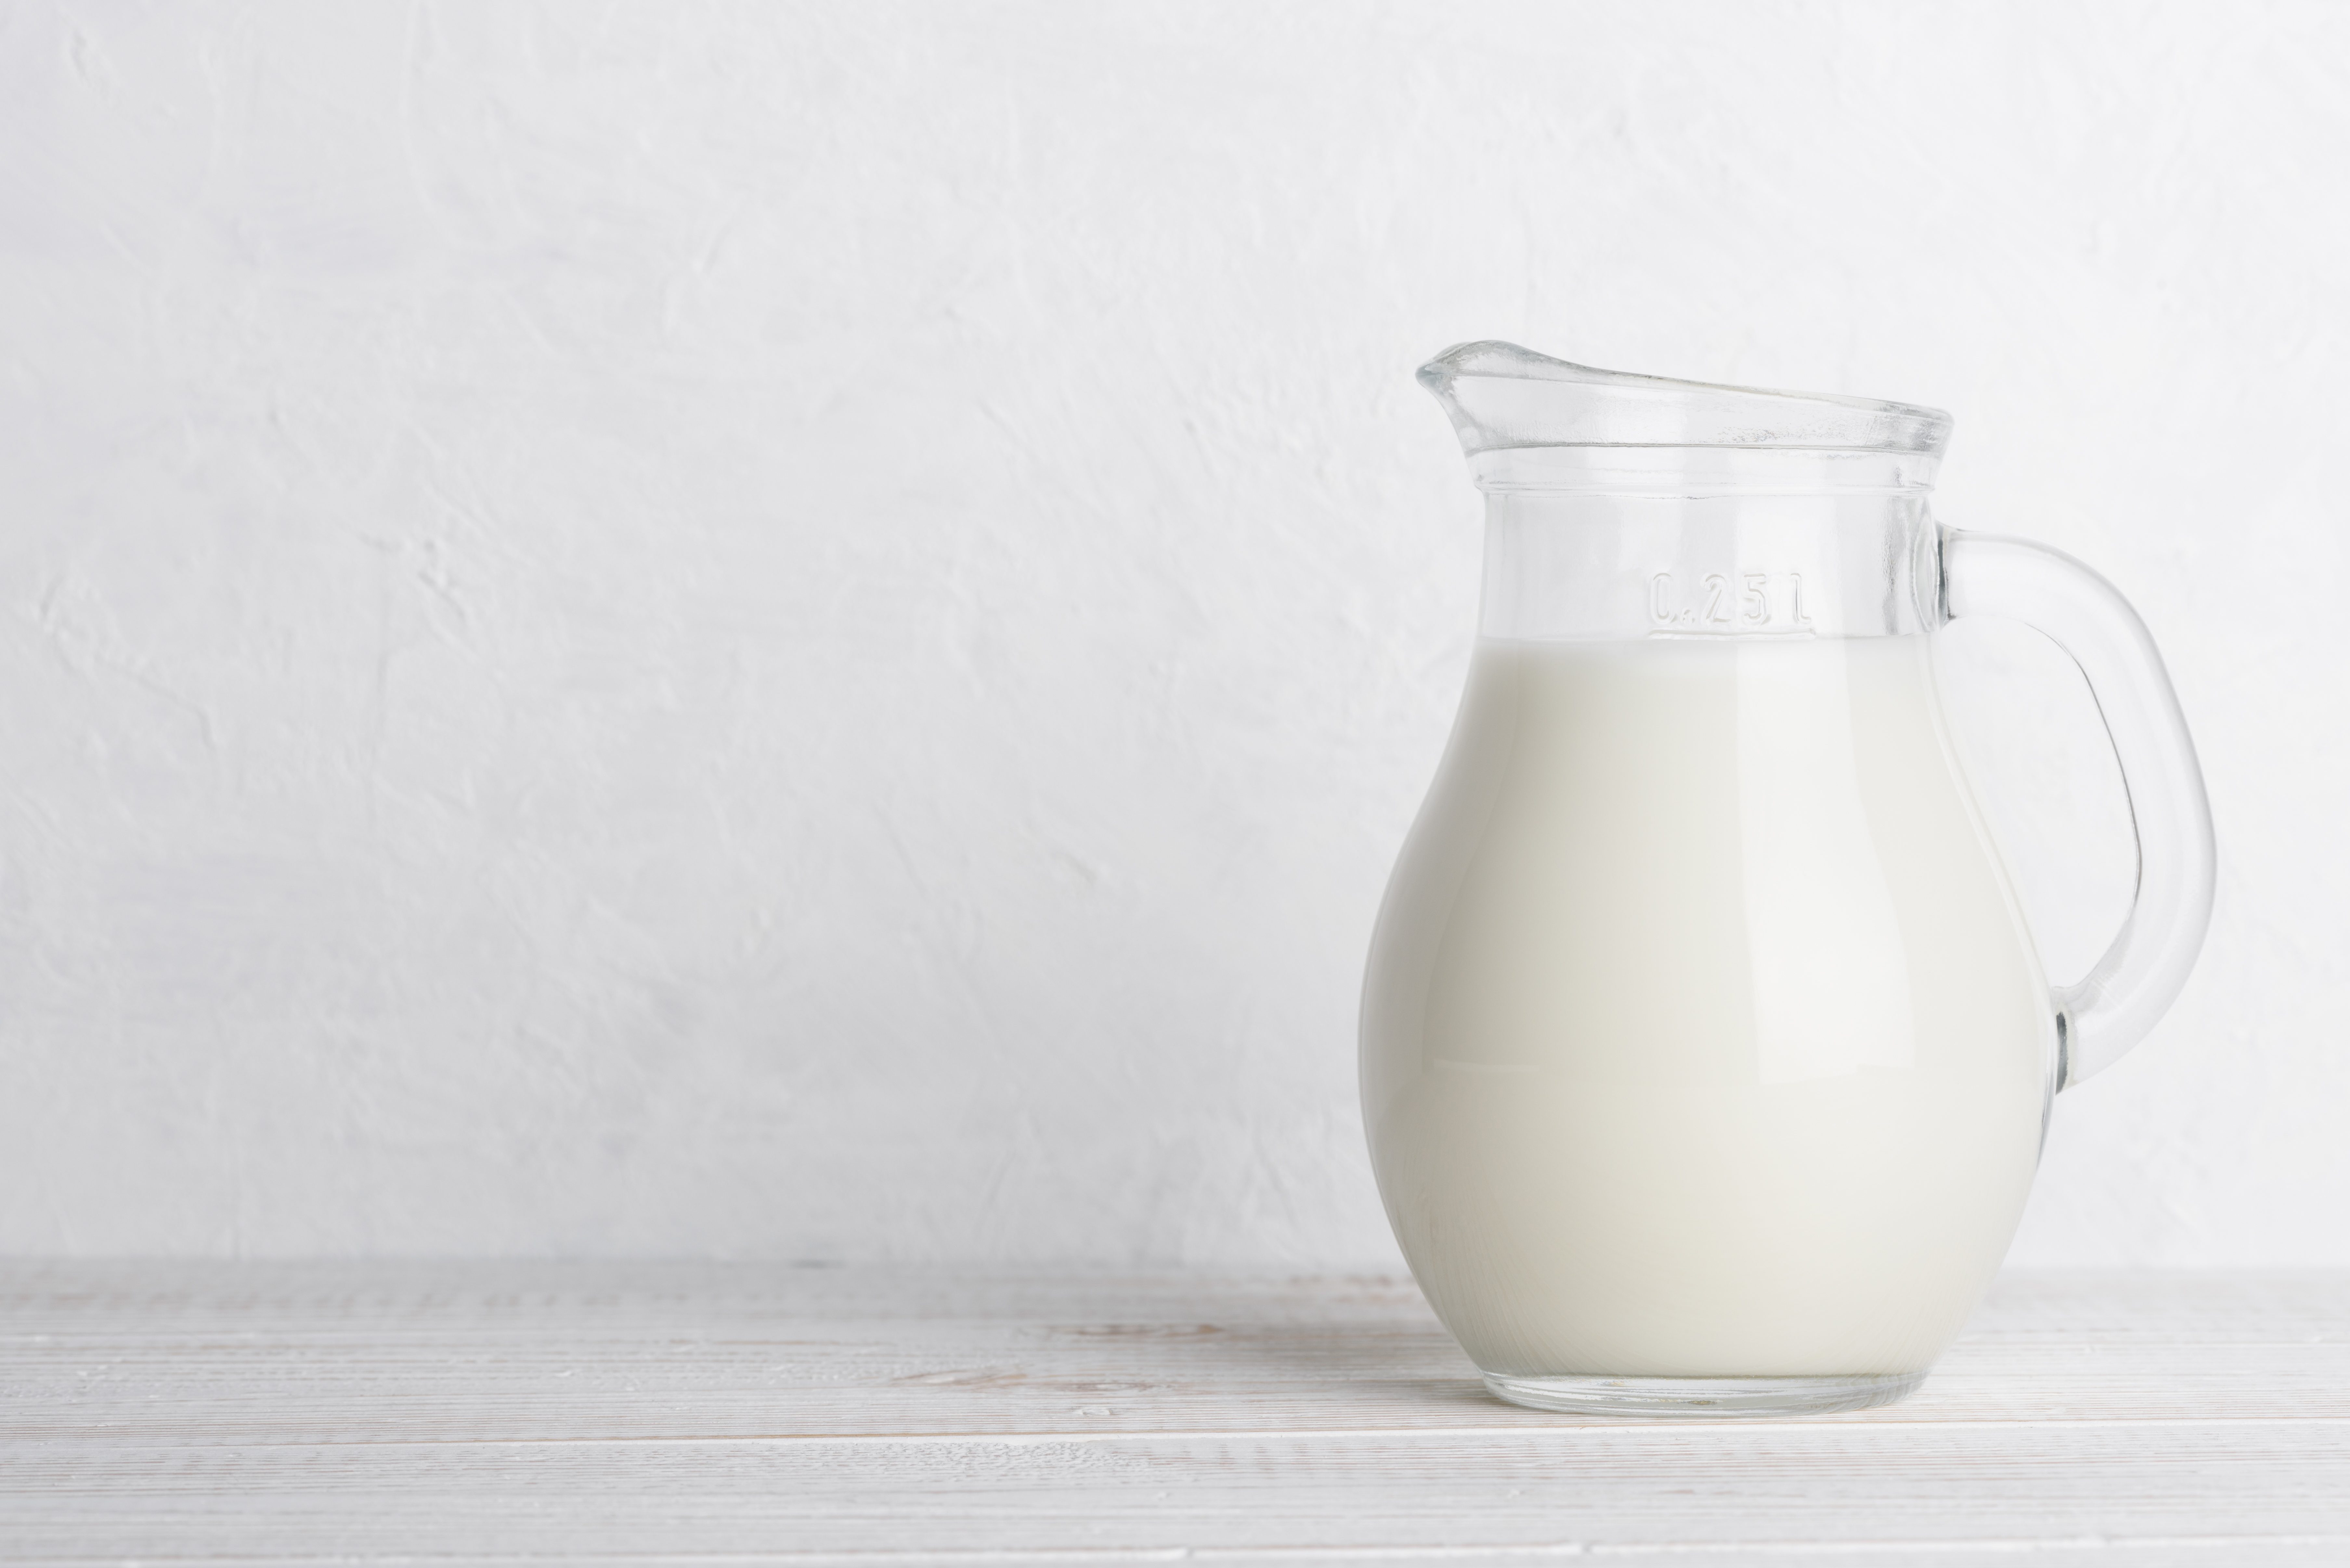 How many calories in a glass of skimmed milk